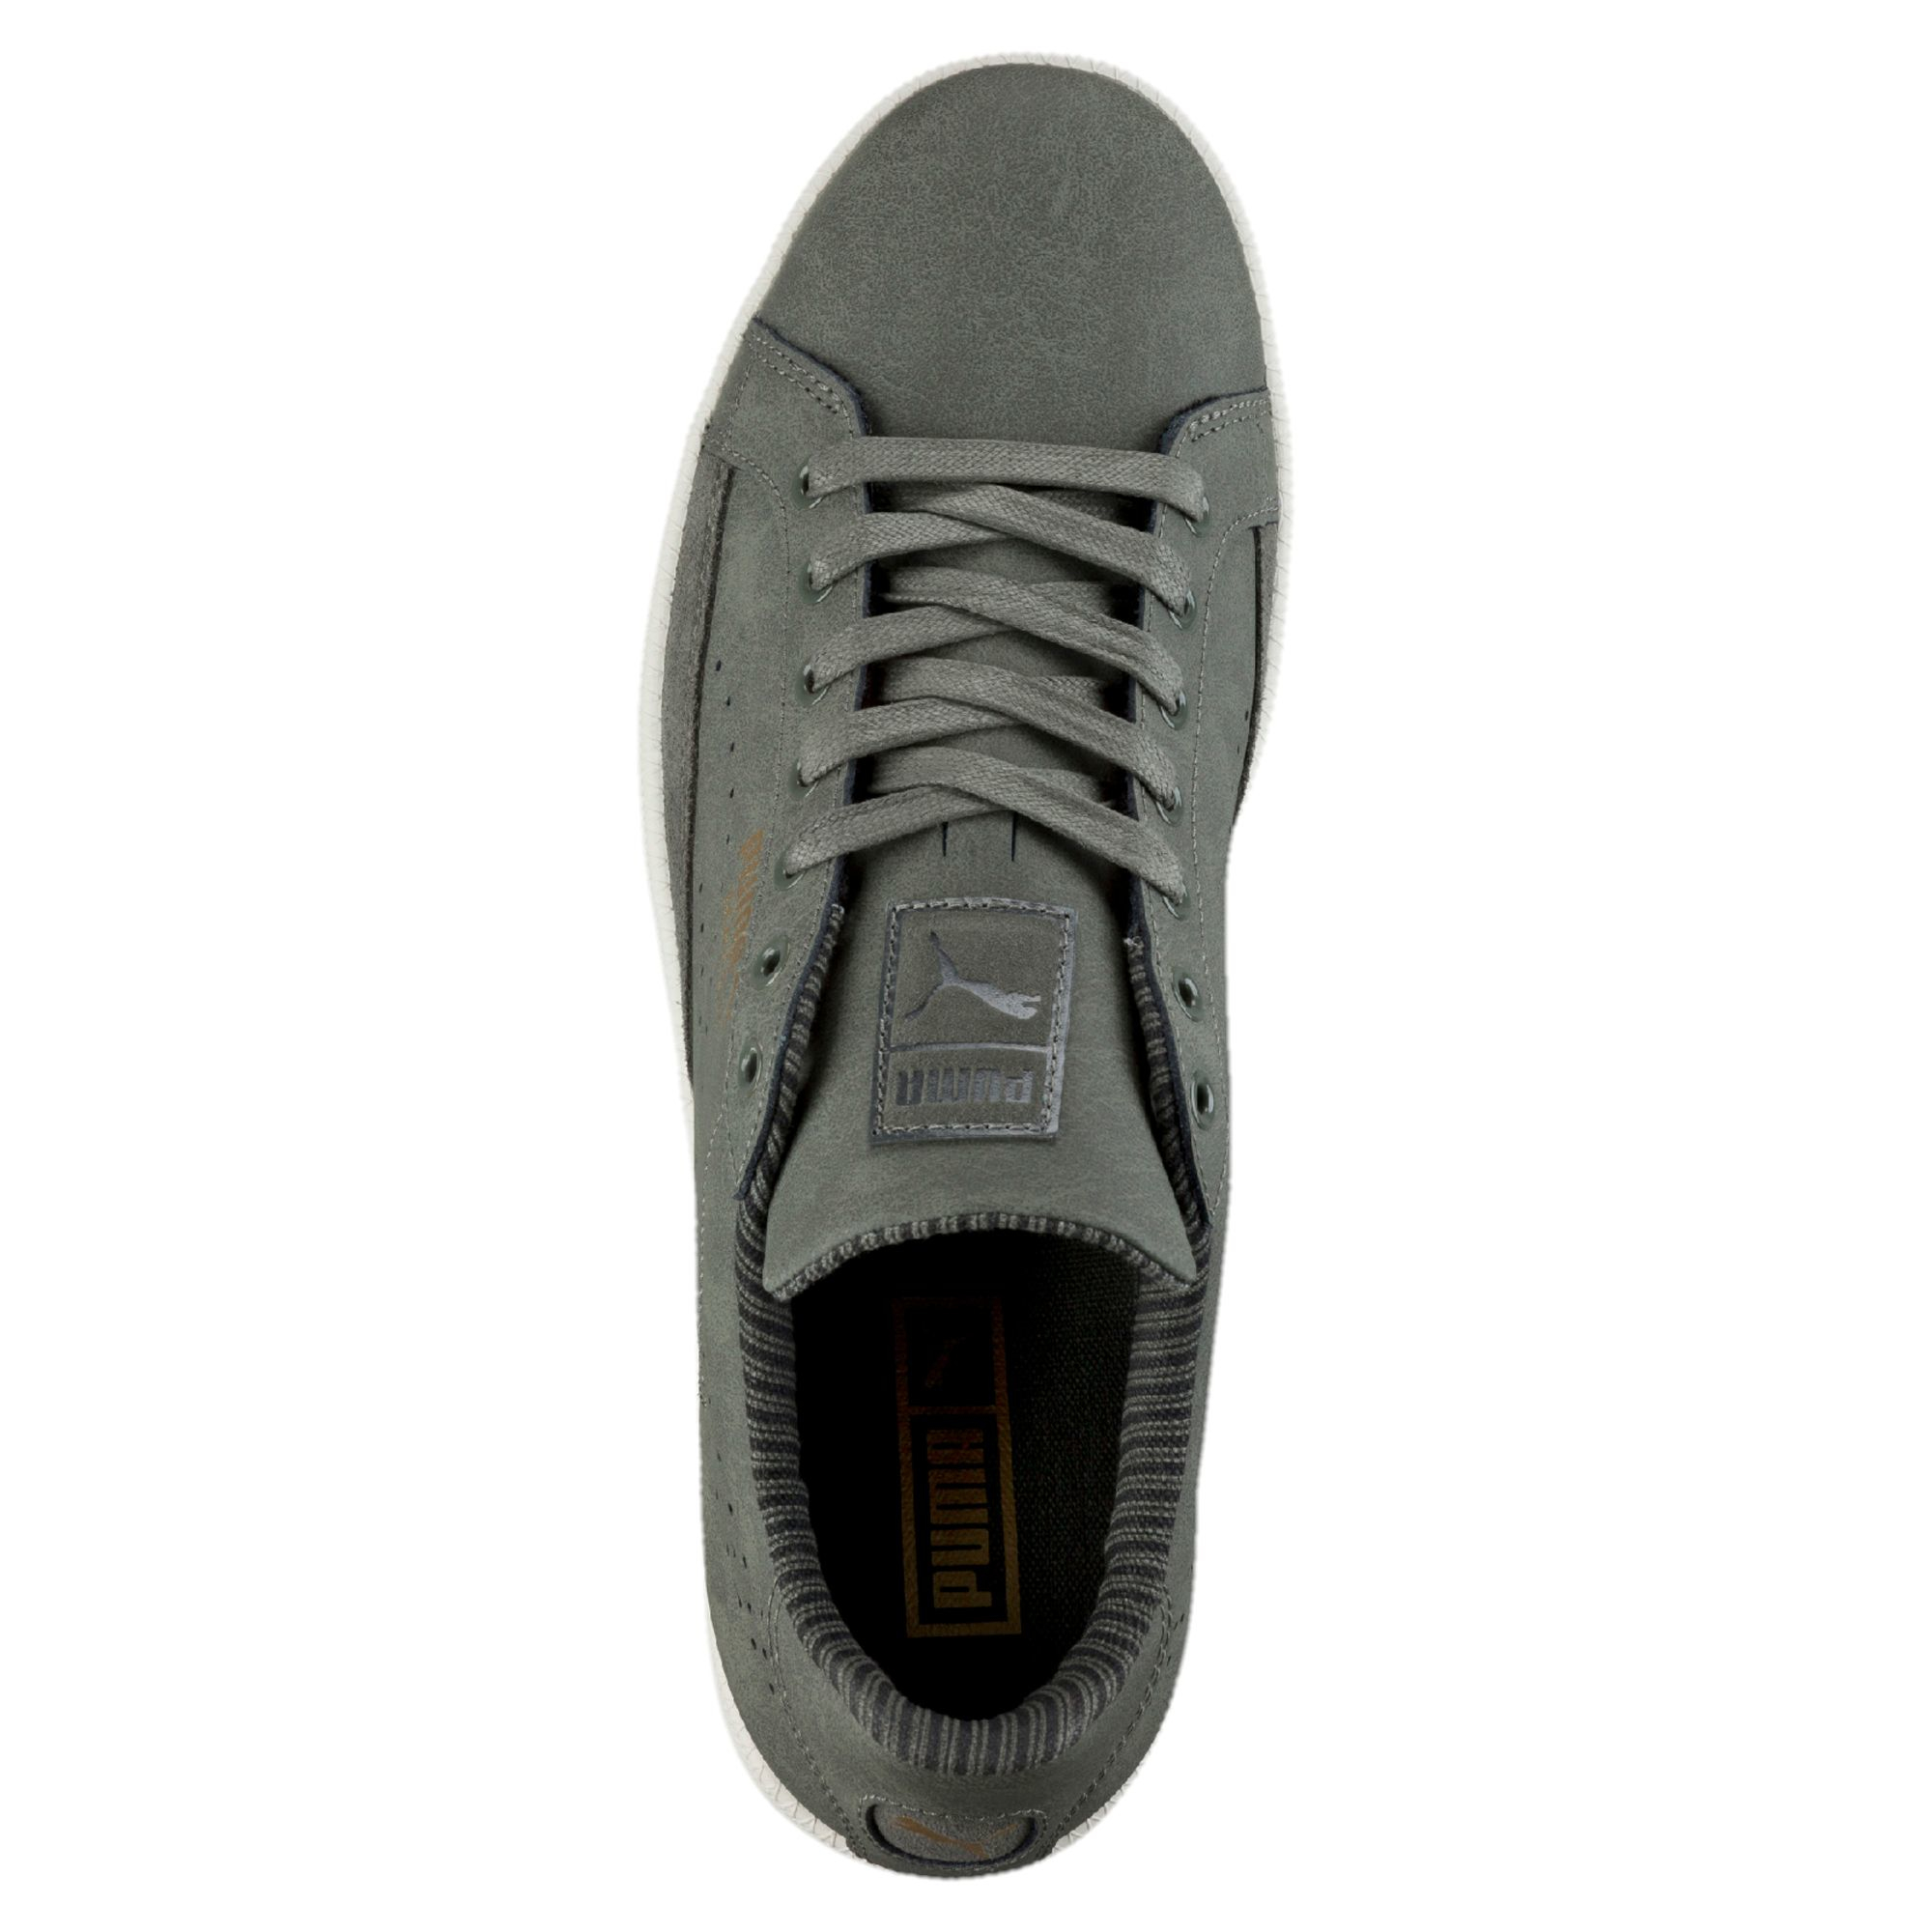 c49a8f8c444 Lyst - Puma Match 74 Citi Series Nm Men s Sneakers in Gray for Men